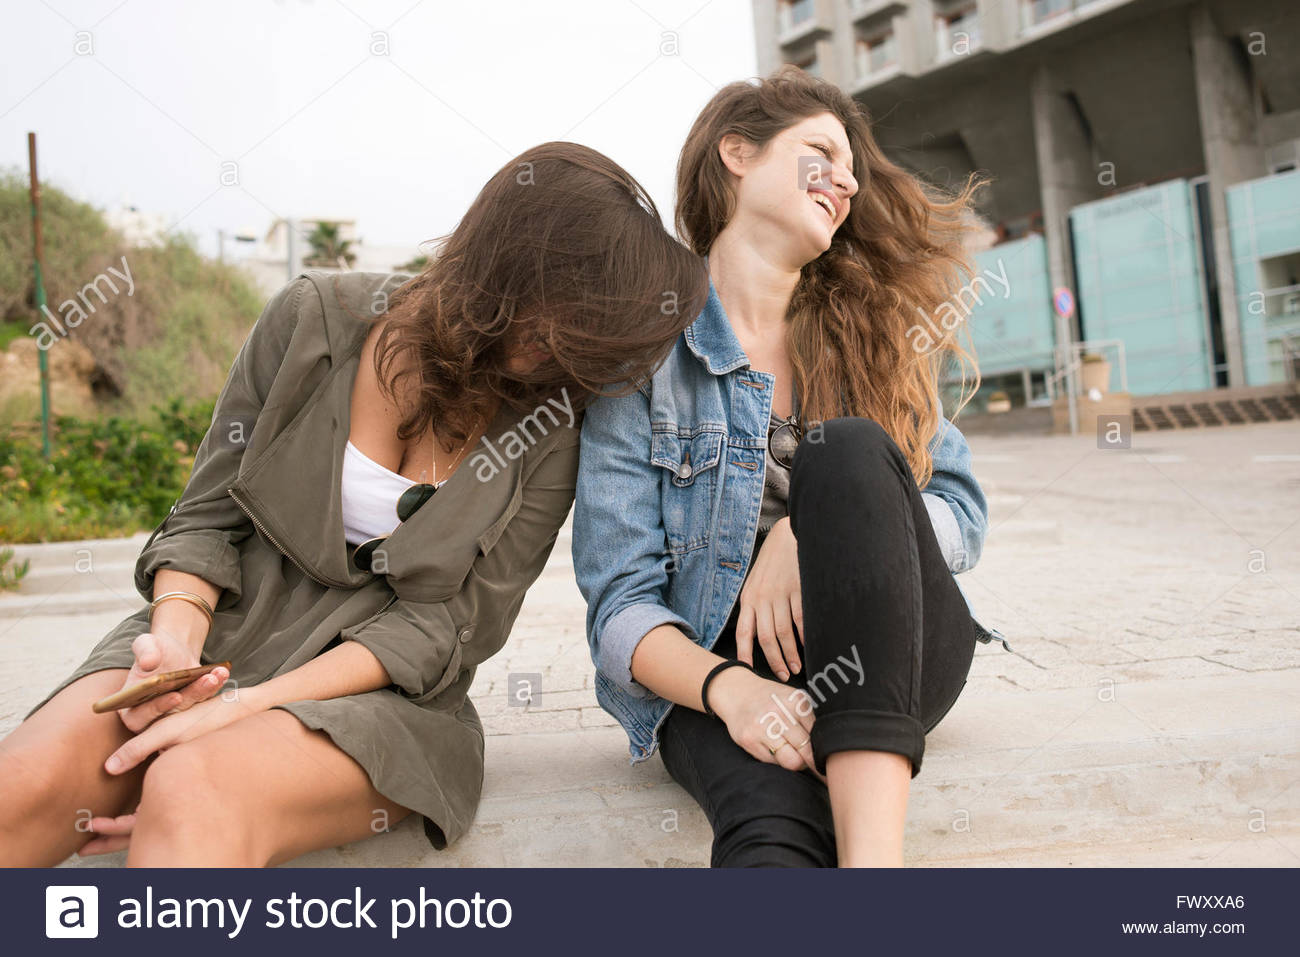 Israel, Tel Aviv, Laughing  young women sitting on steps - Stock Image